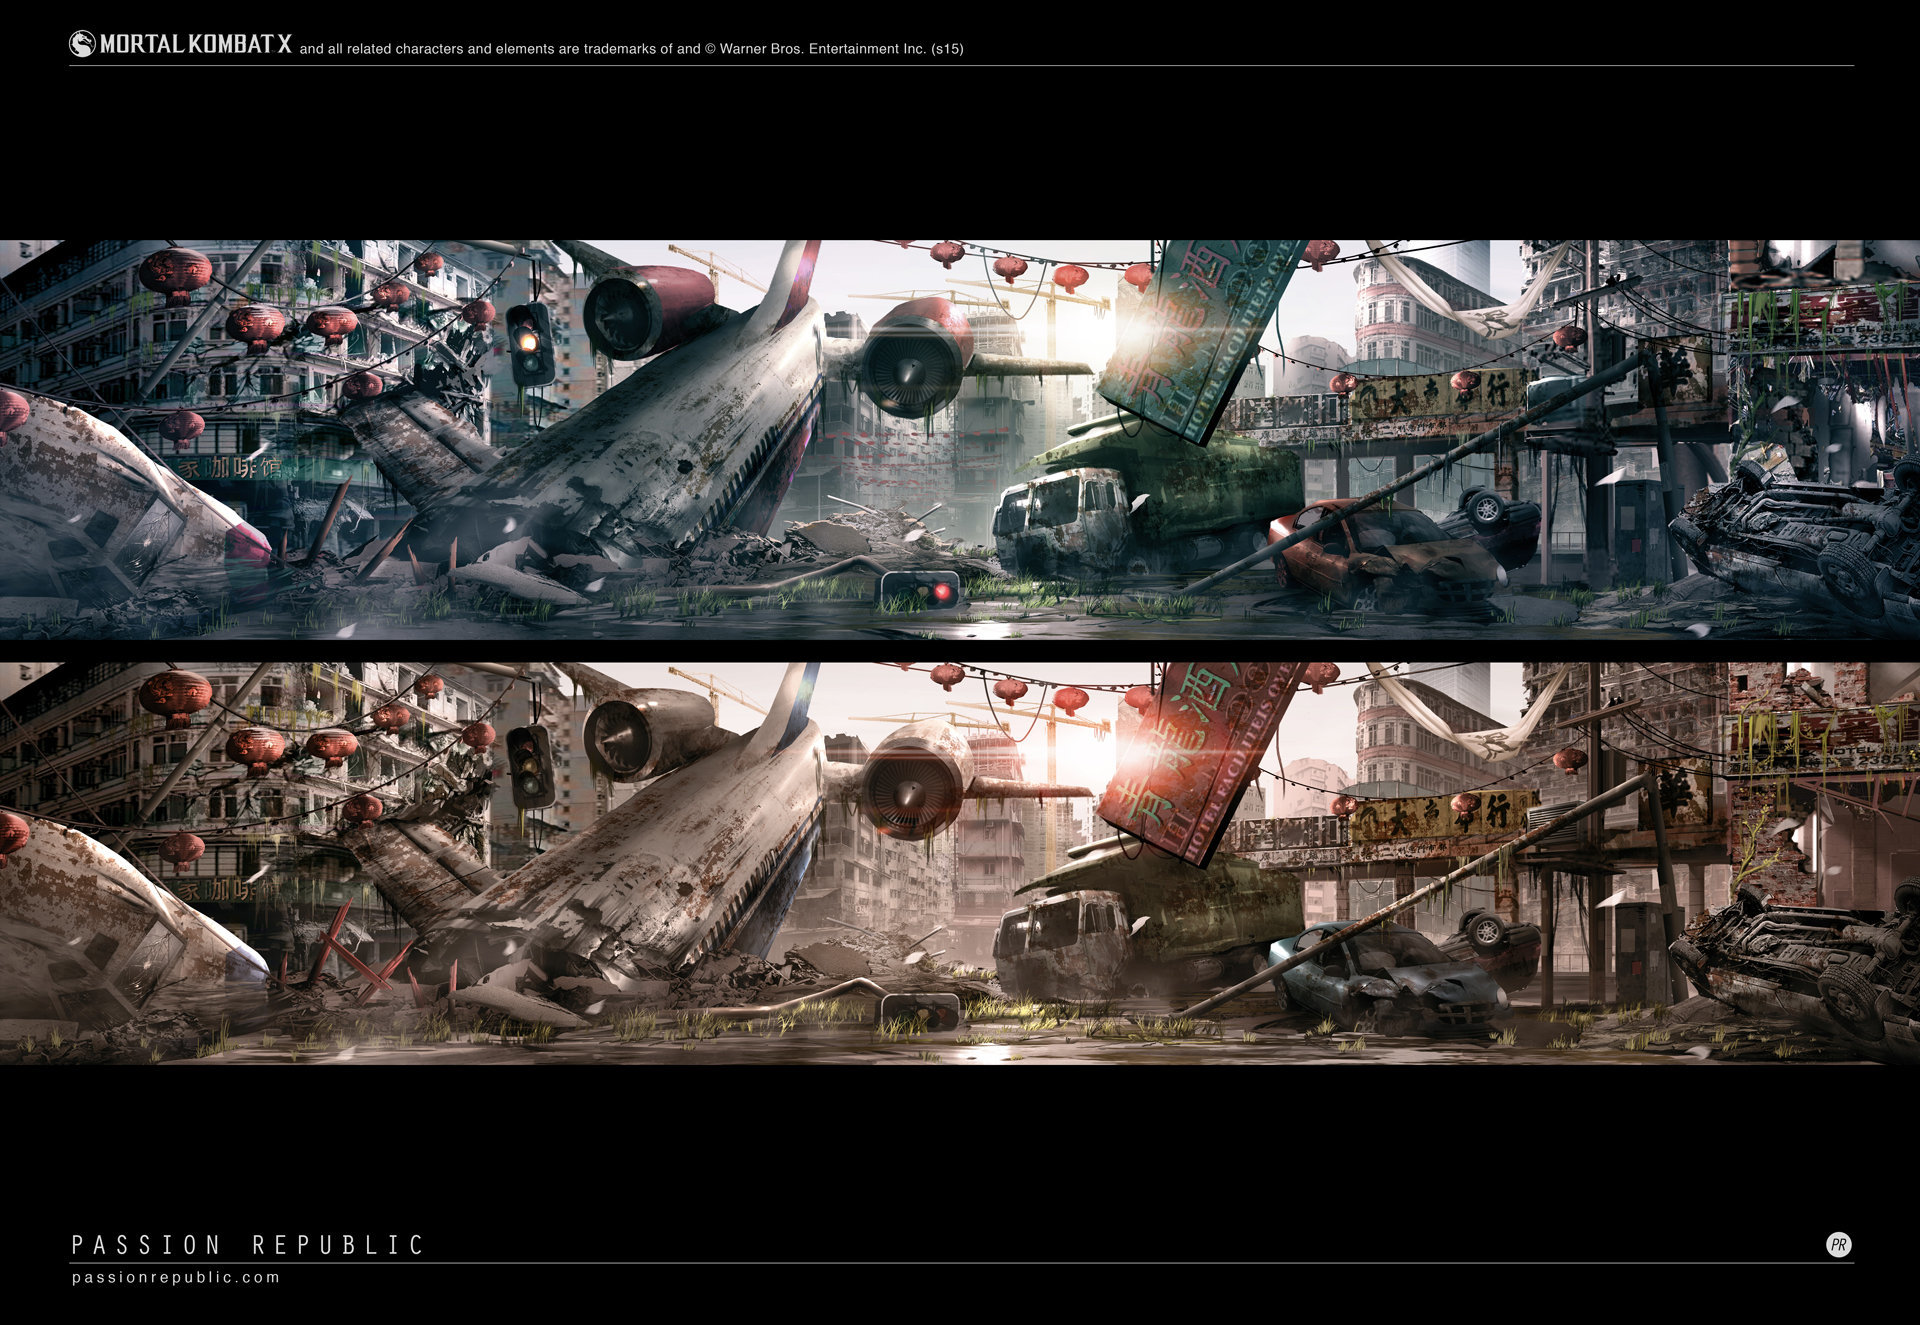 Johnson ting passion republic mkx layout final landscape level01